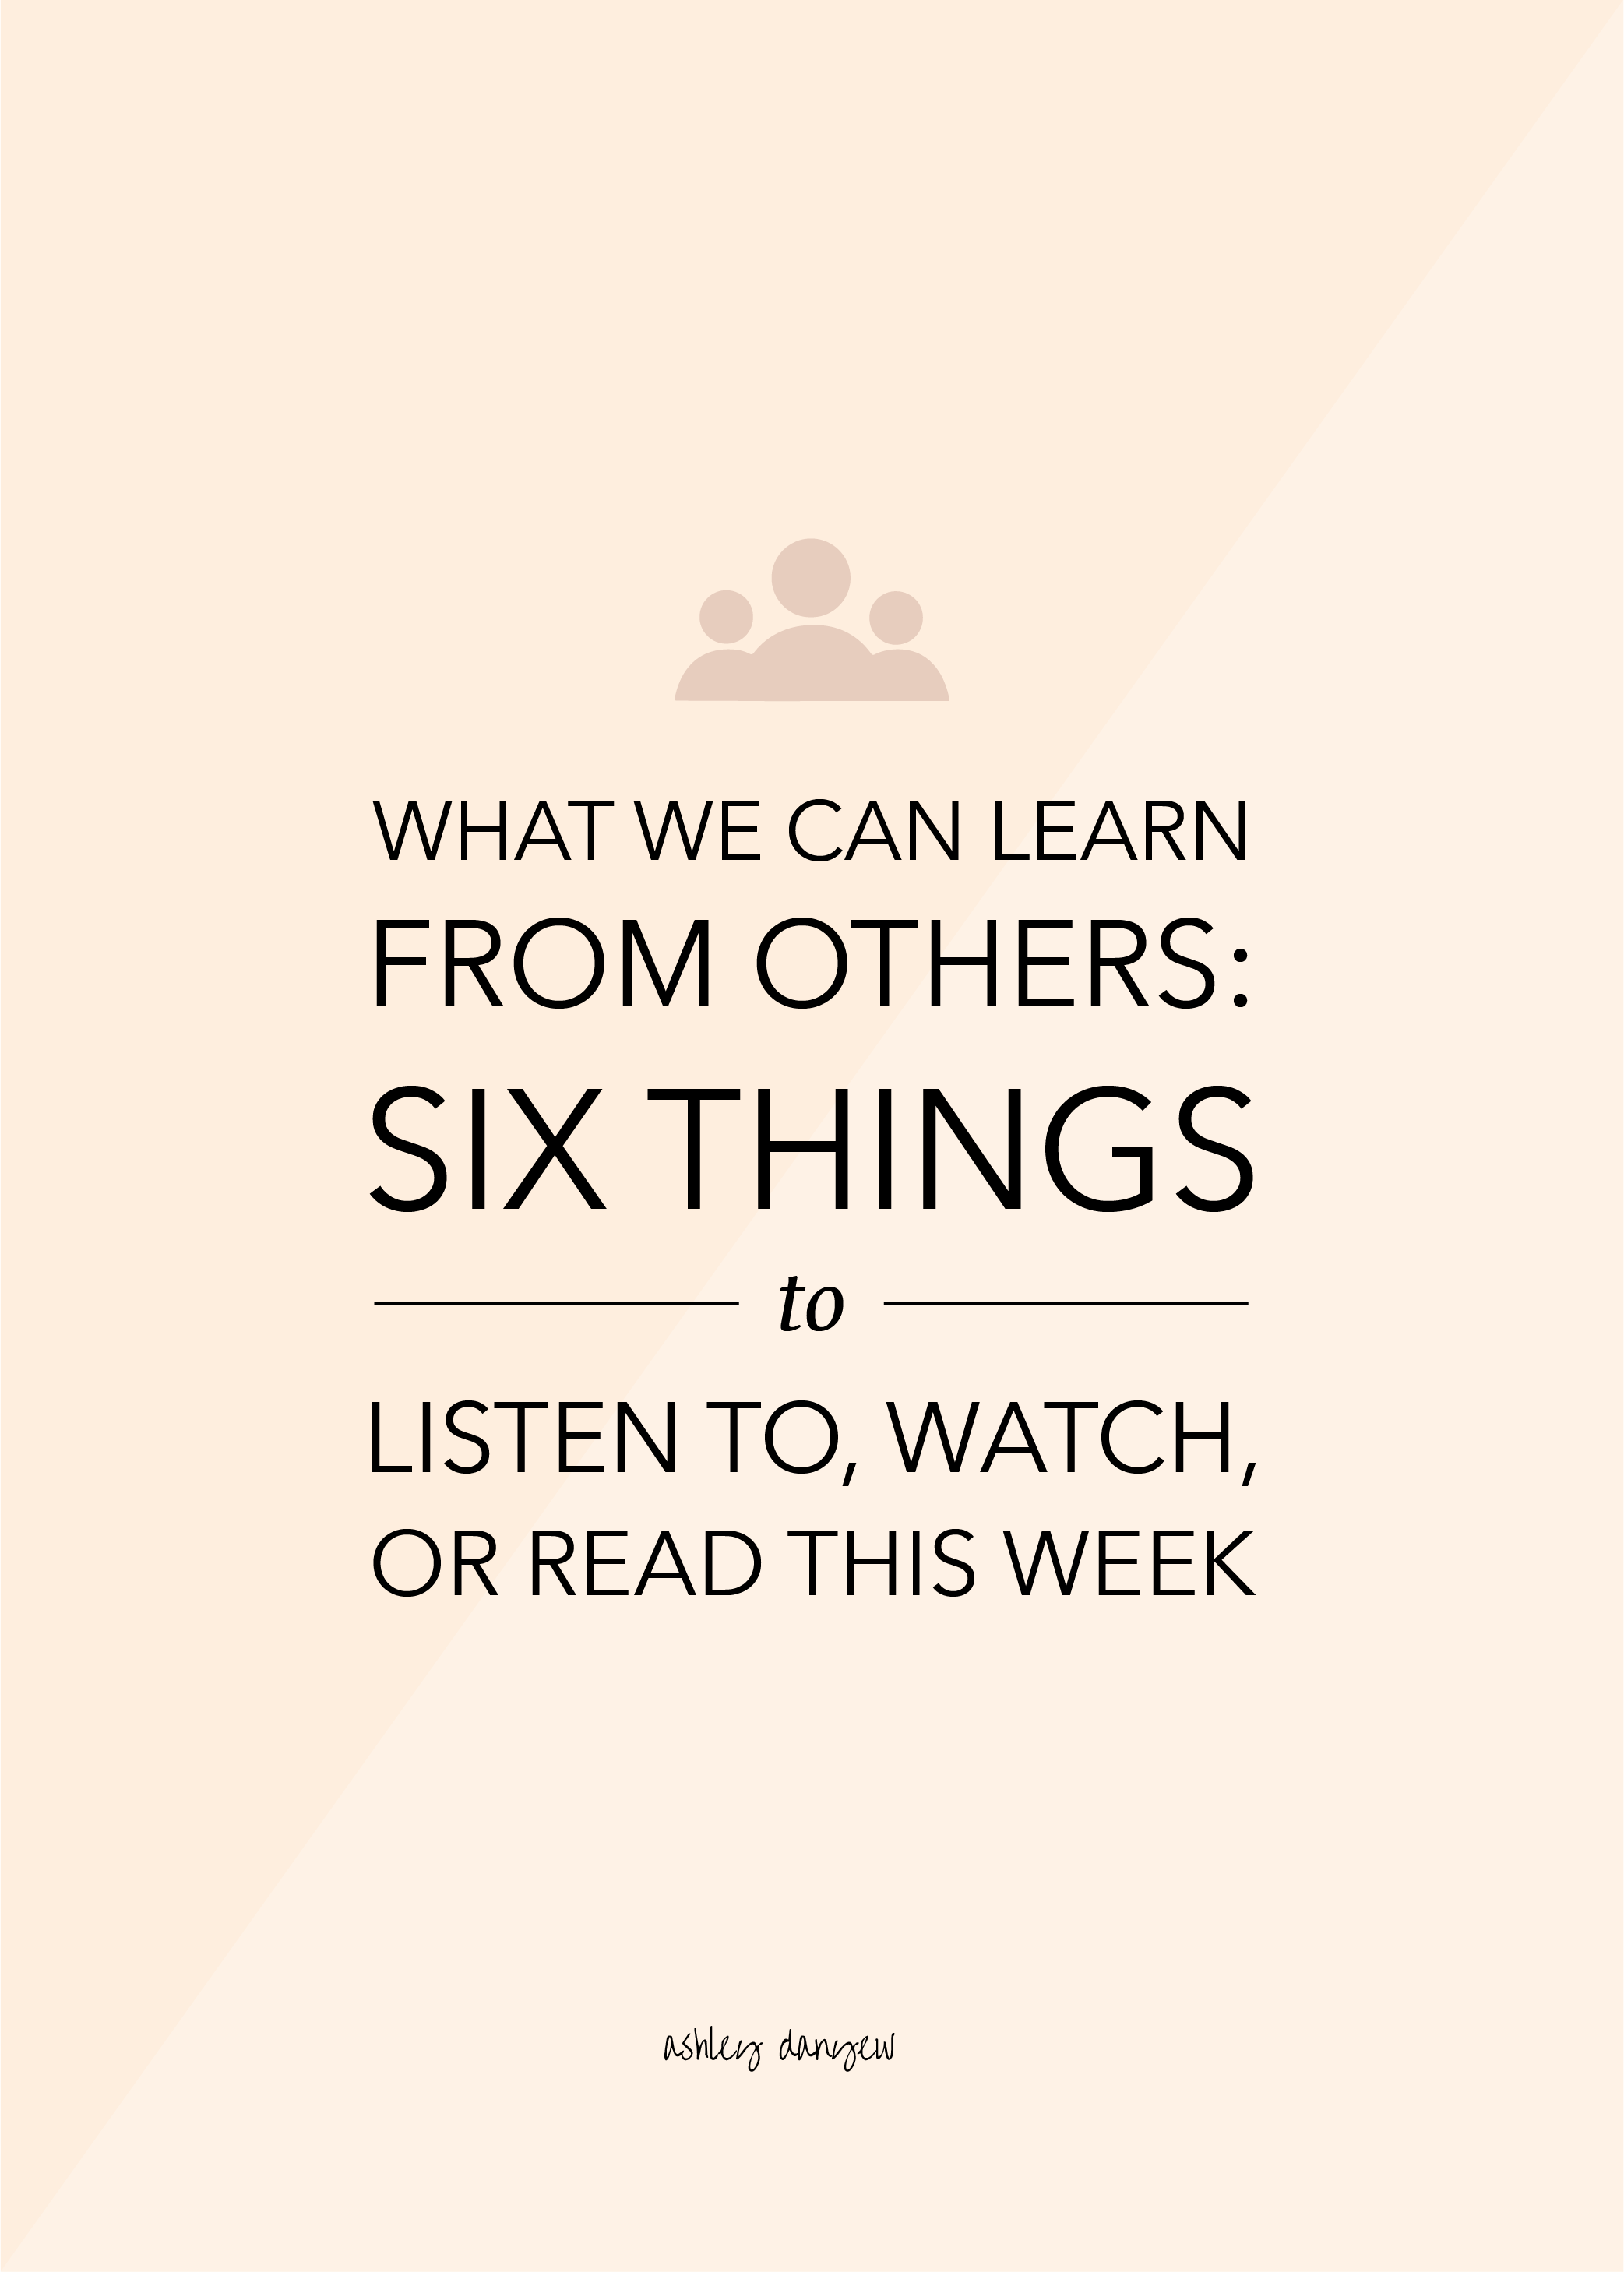 Copy of What We Can Learn From Others: Six Things to Listen to, Watch, or Read This Week